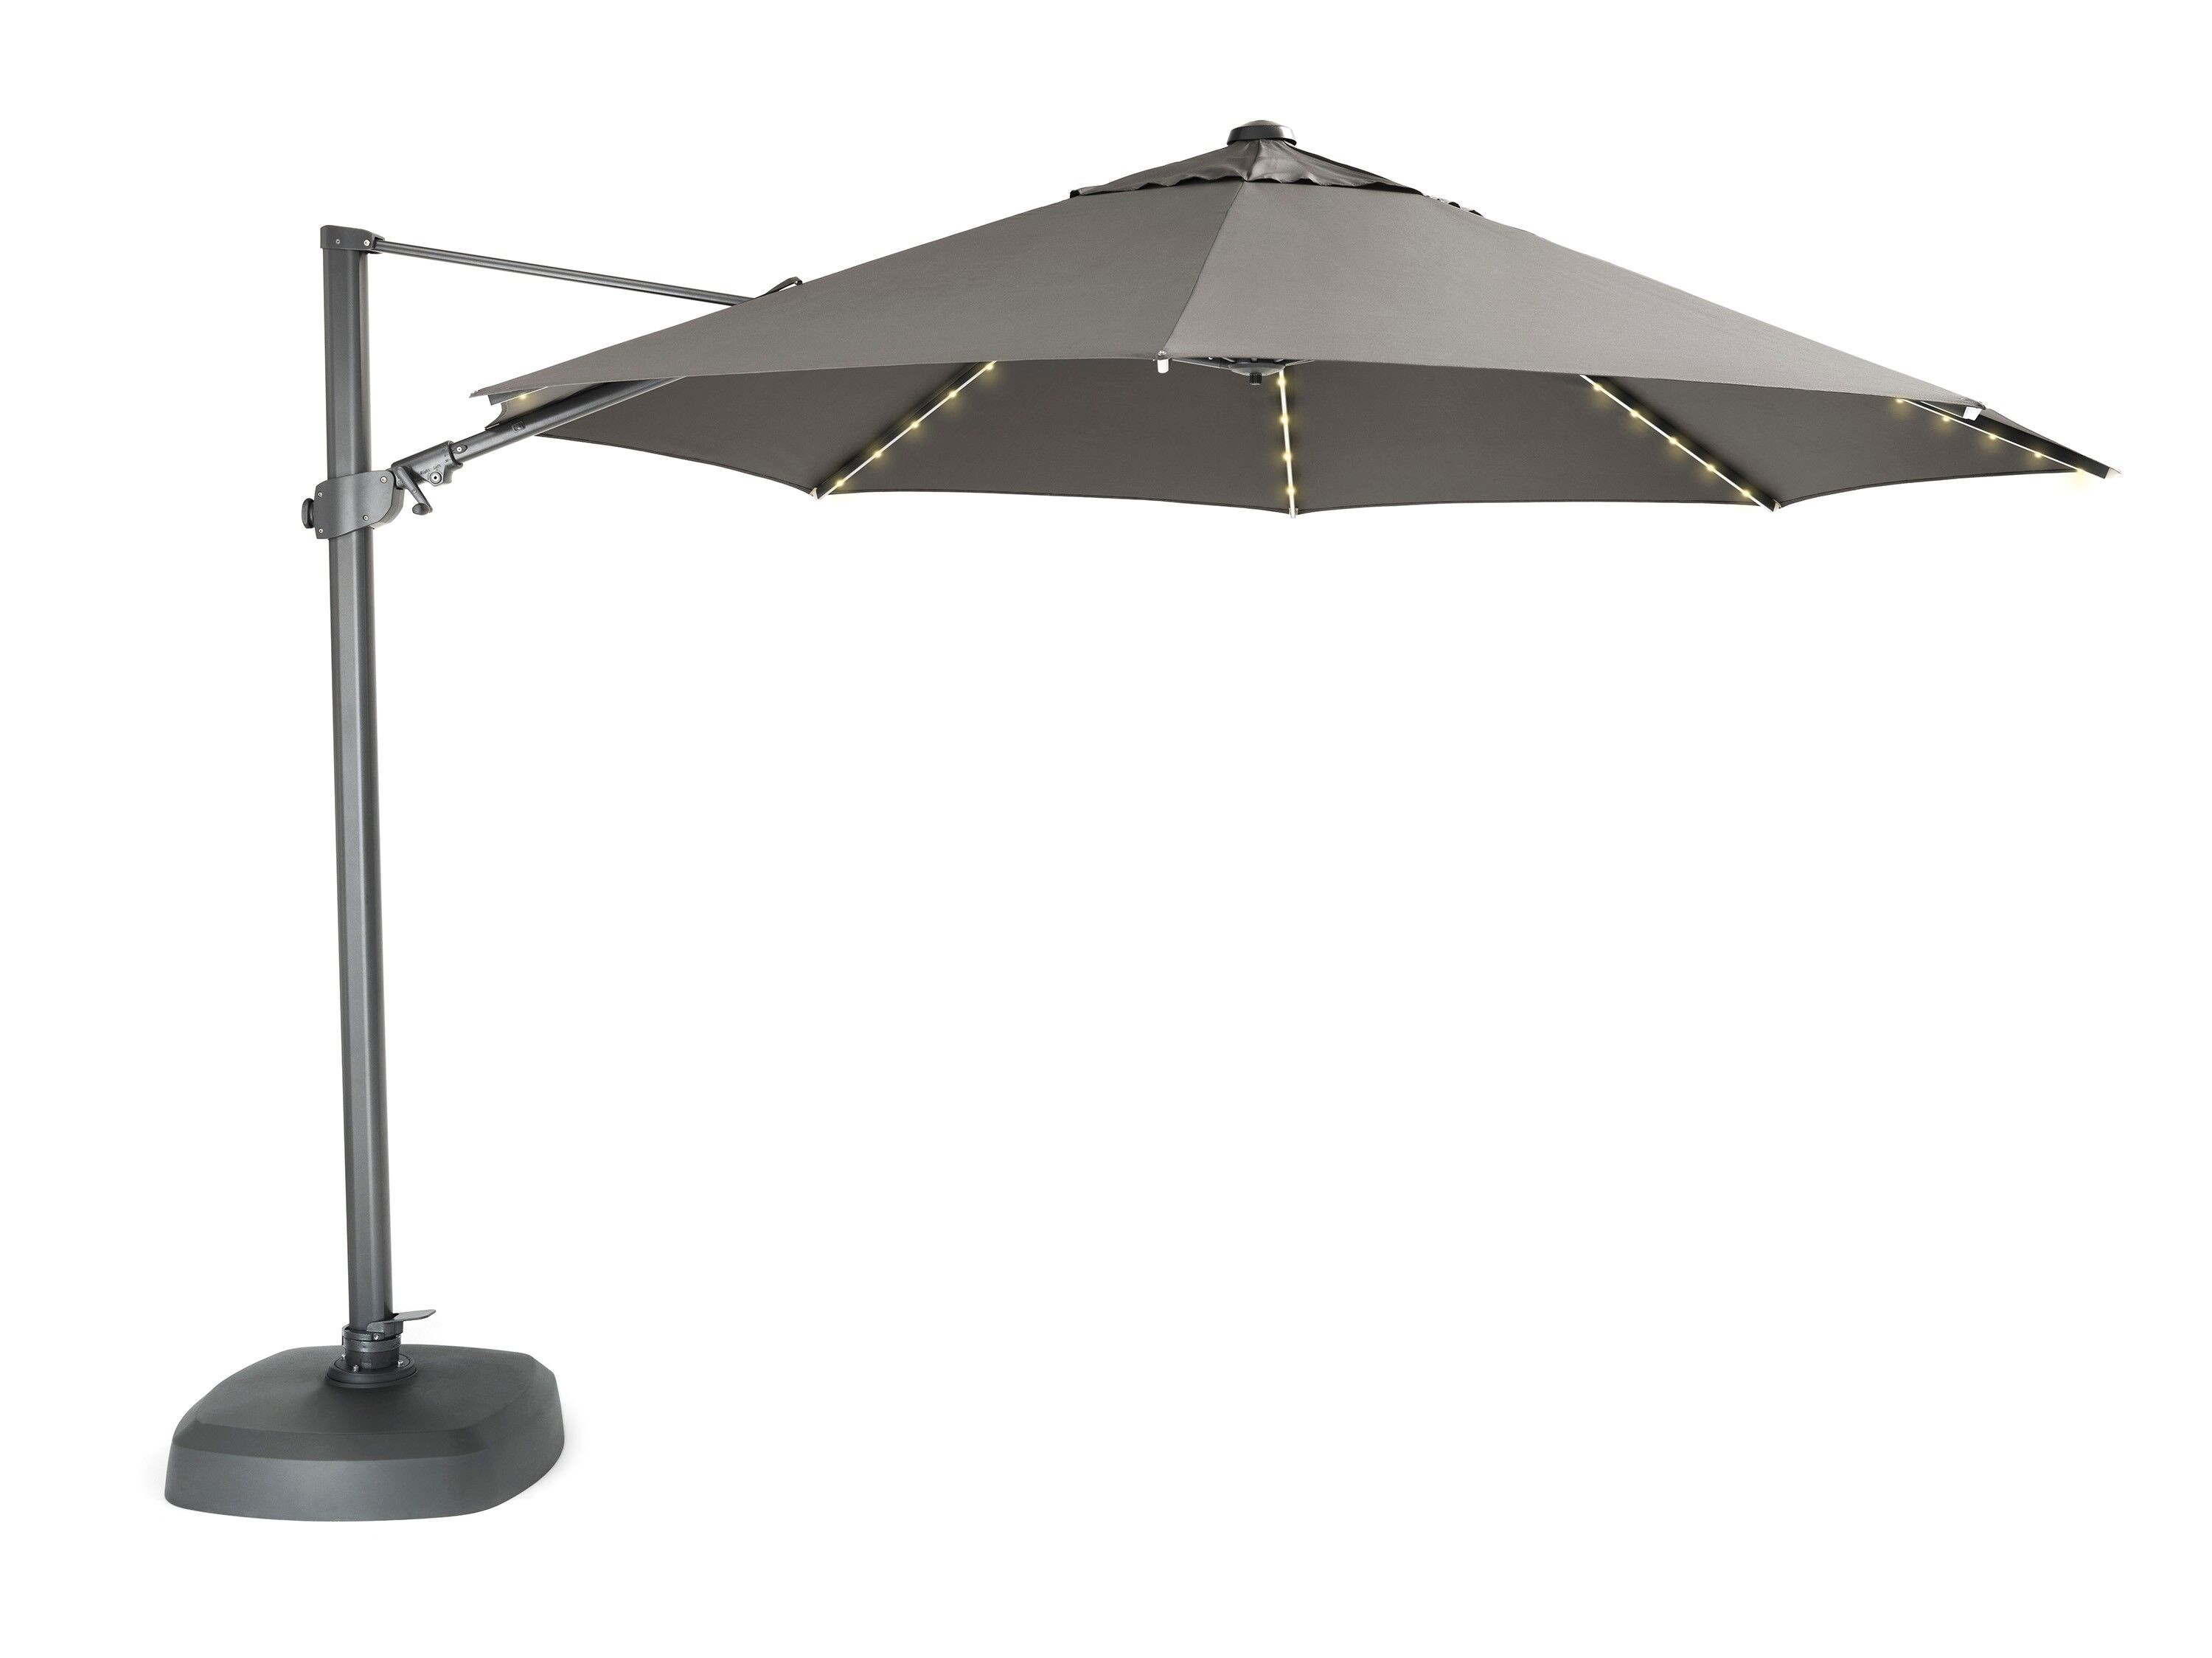 Kettler Parasol Free Arm 3.5m in Taupe with LED Lights and Bluetooth Speaker